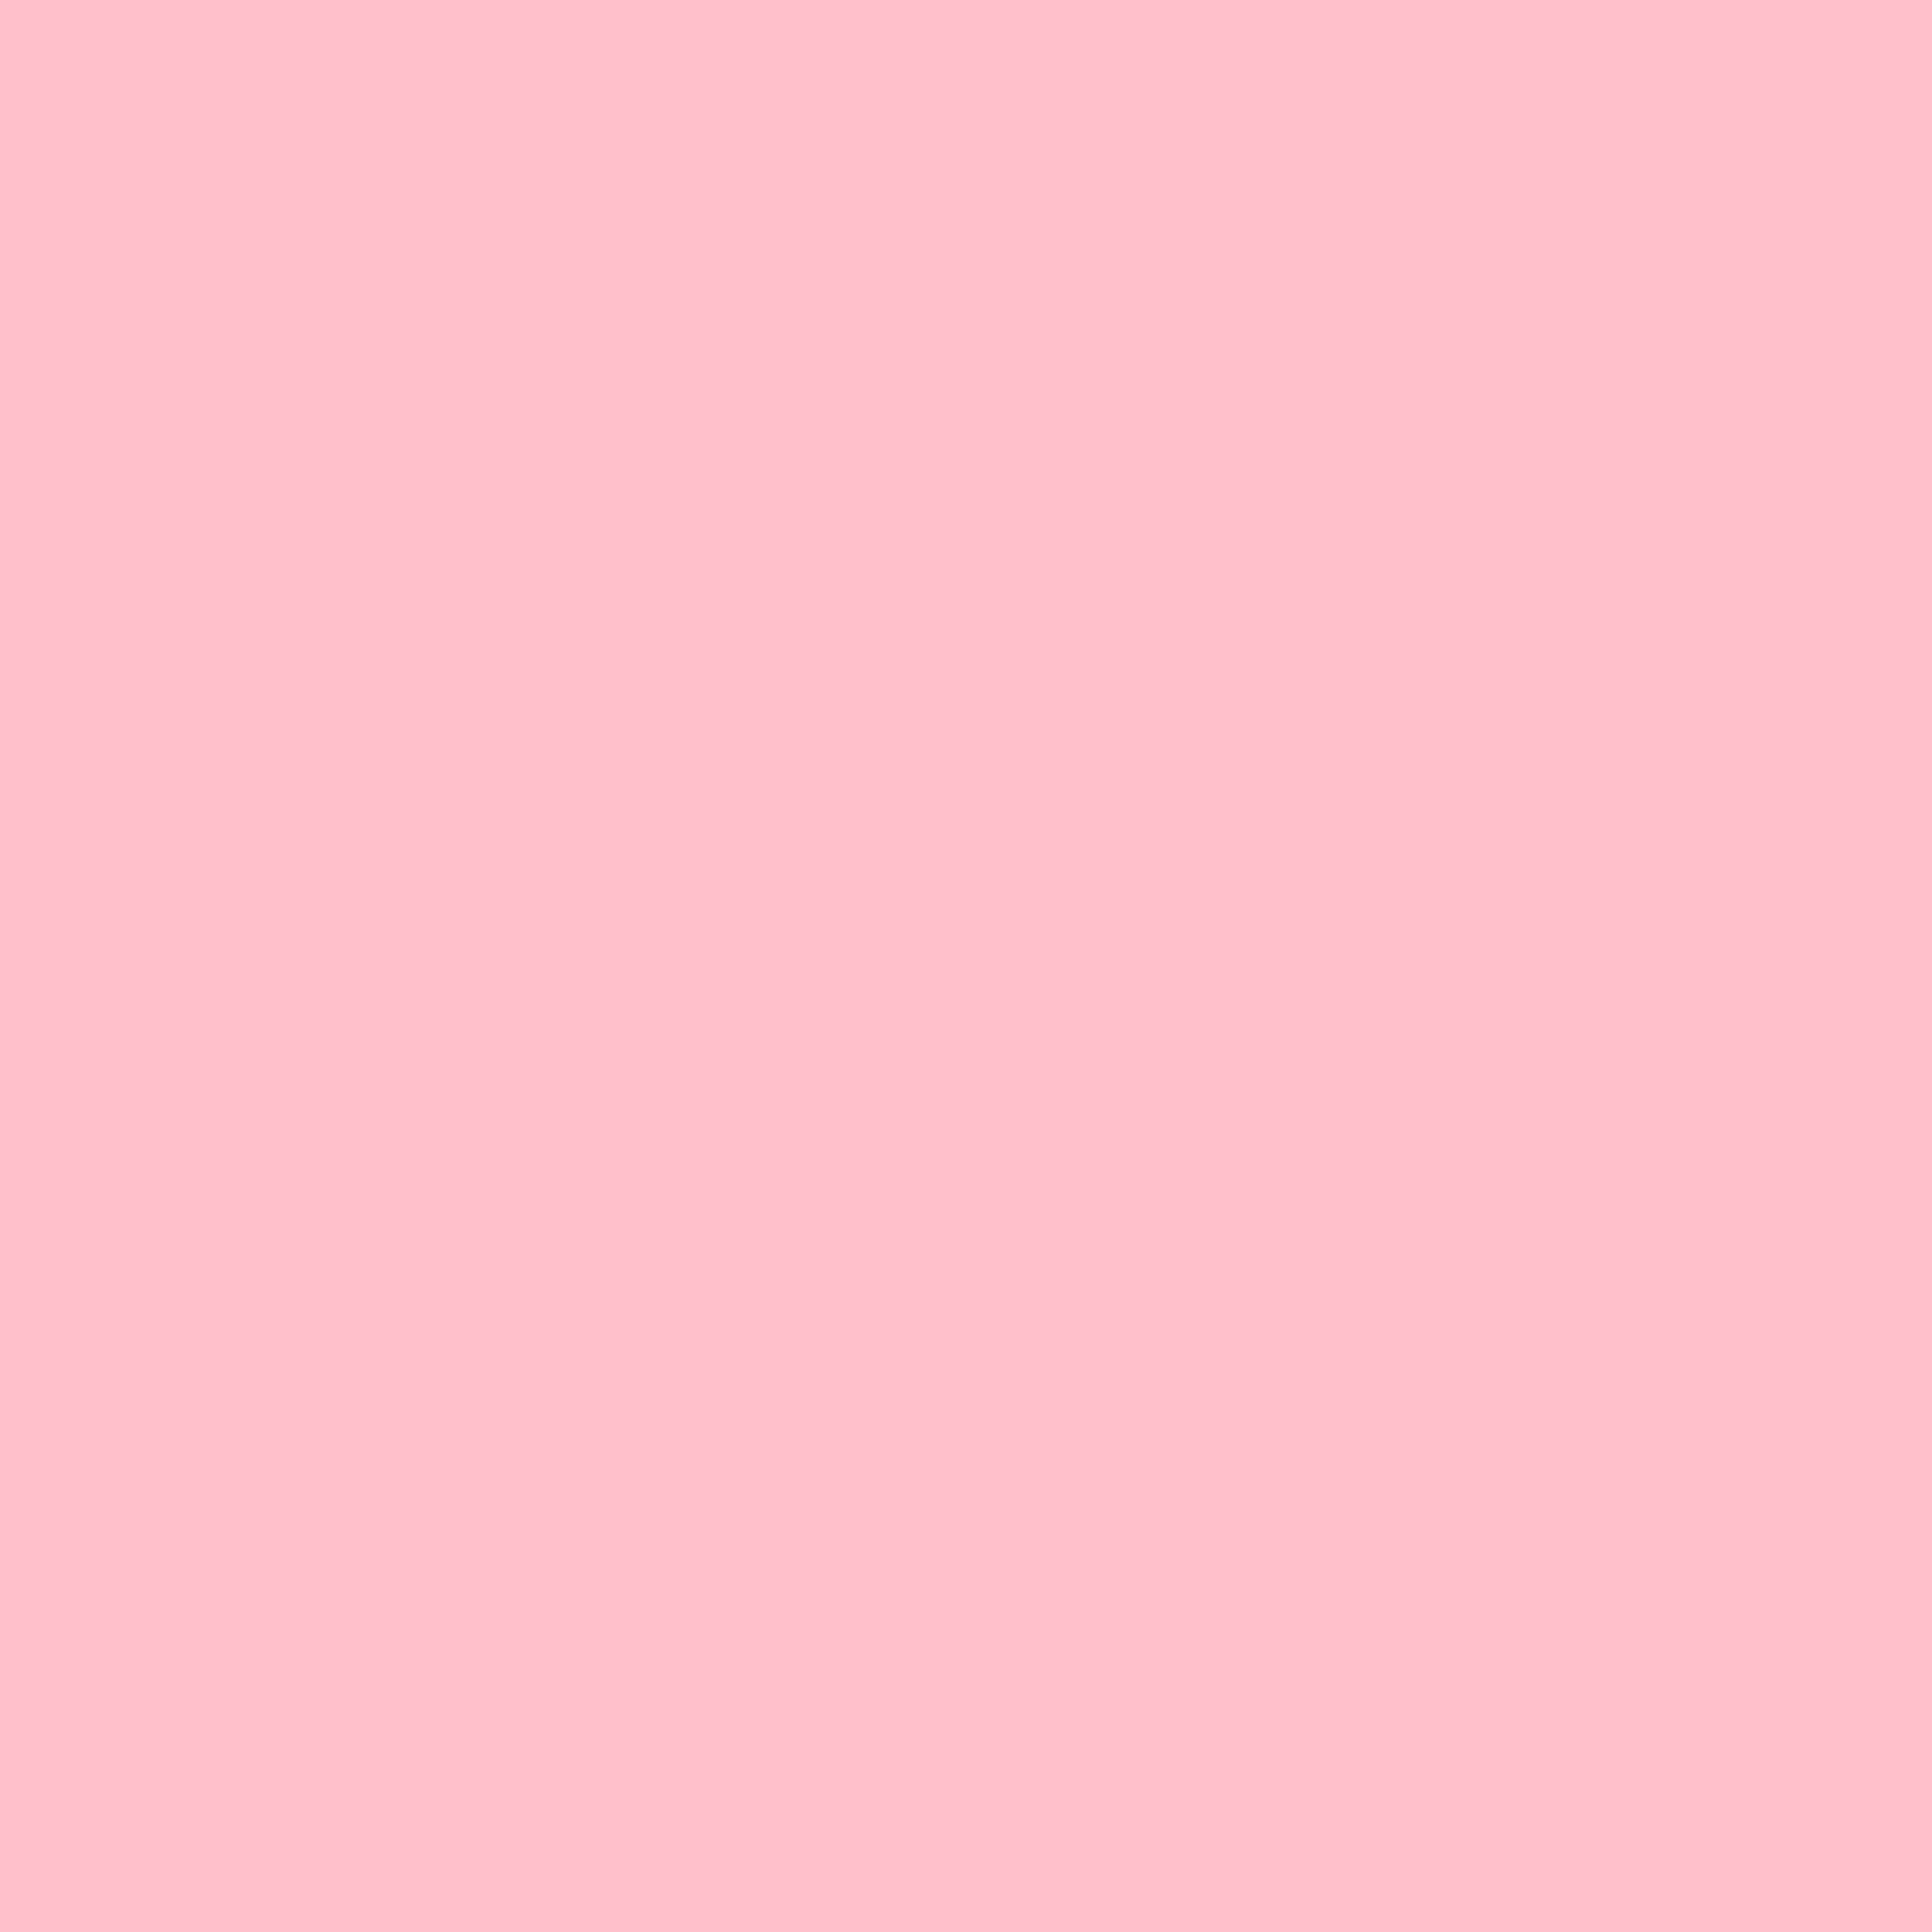 2048x2048 Pink Solid Color Background